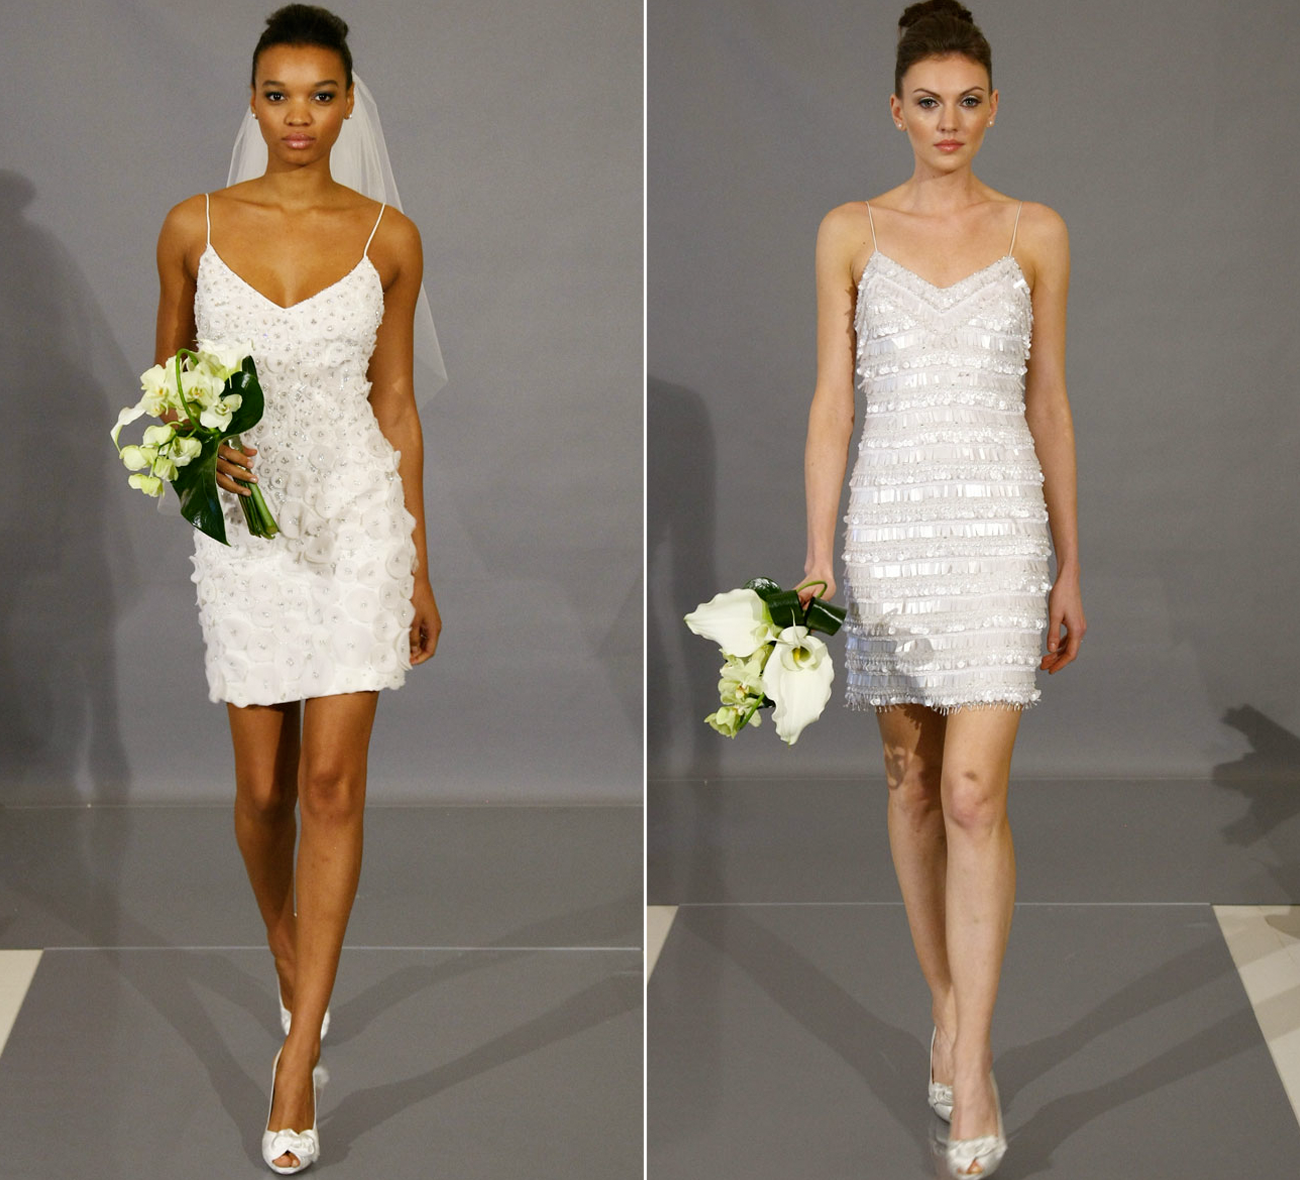 Little-white-wedding-dresses-2012-theia-bridal-gowns.original